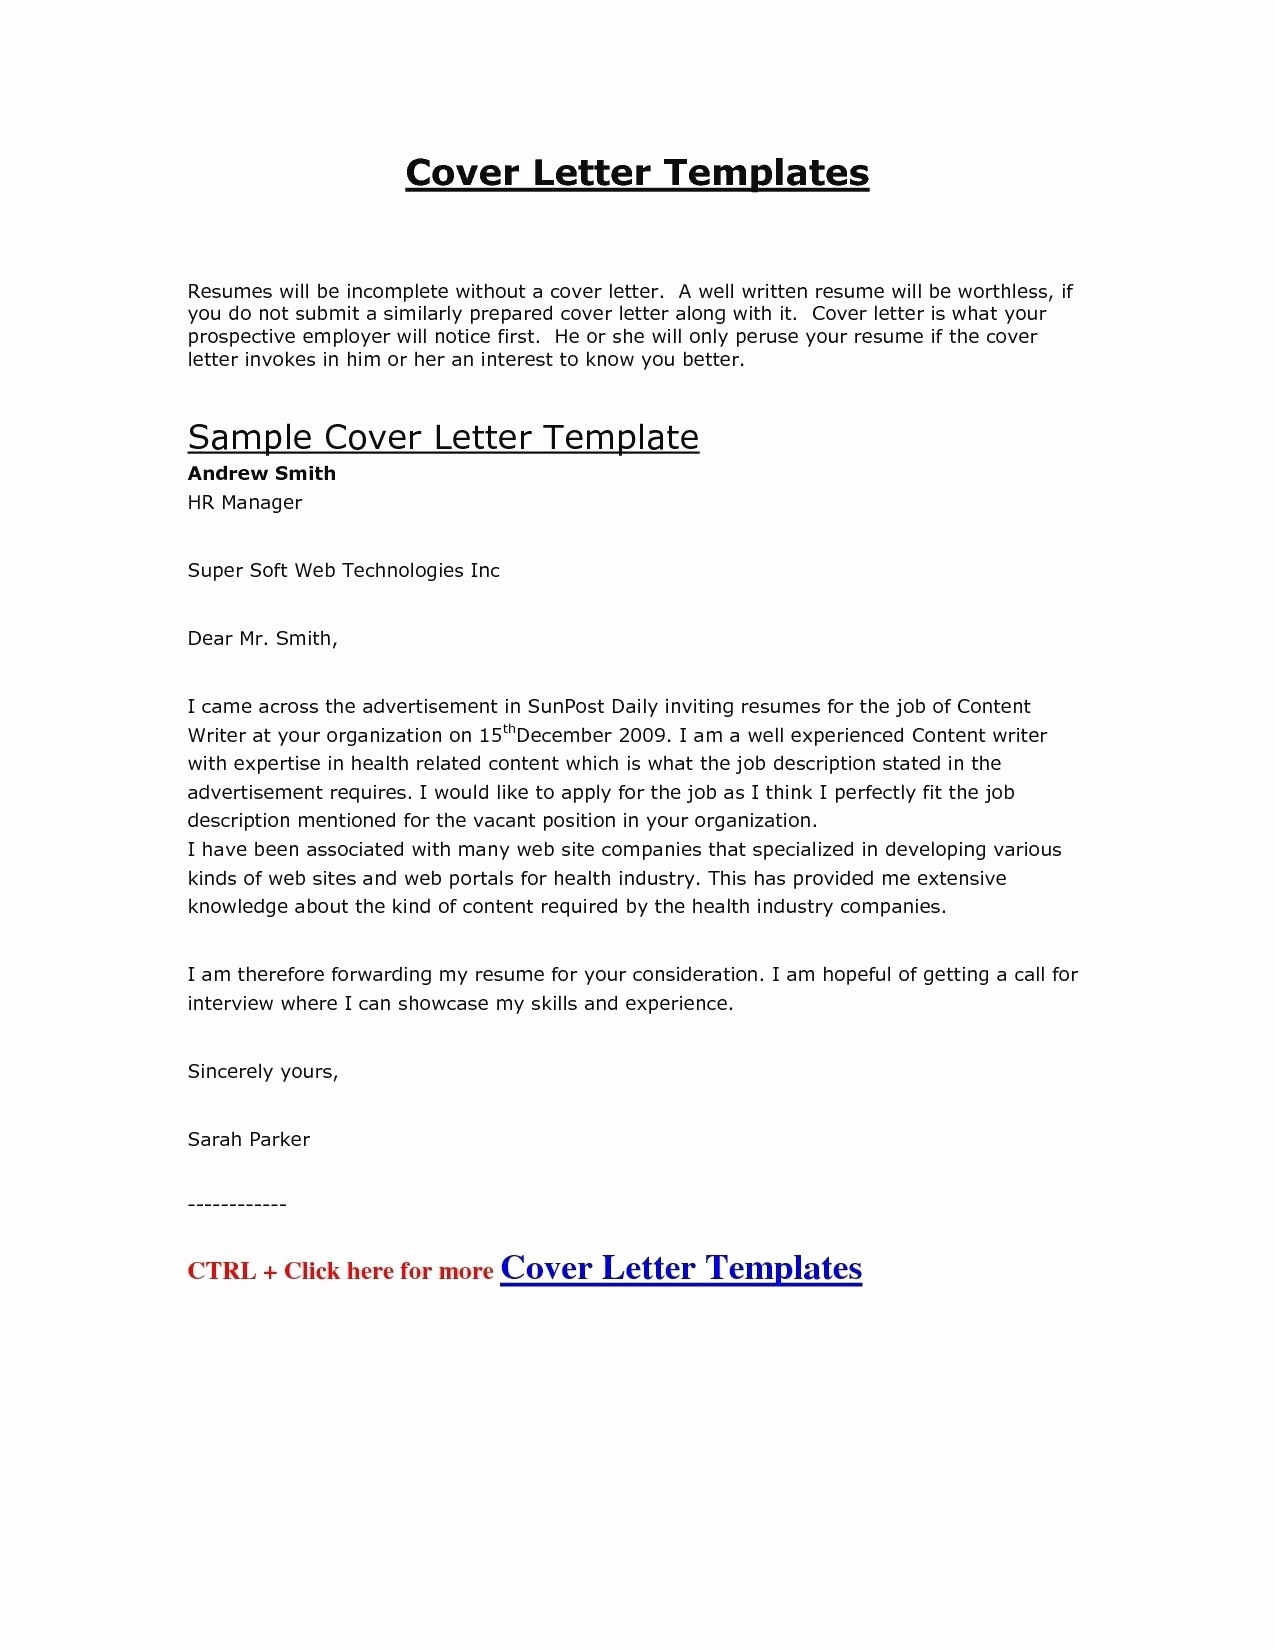 Free Cover Letter Template for Job Application - Sample Cover Letter for A Job Job Application Letter format